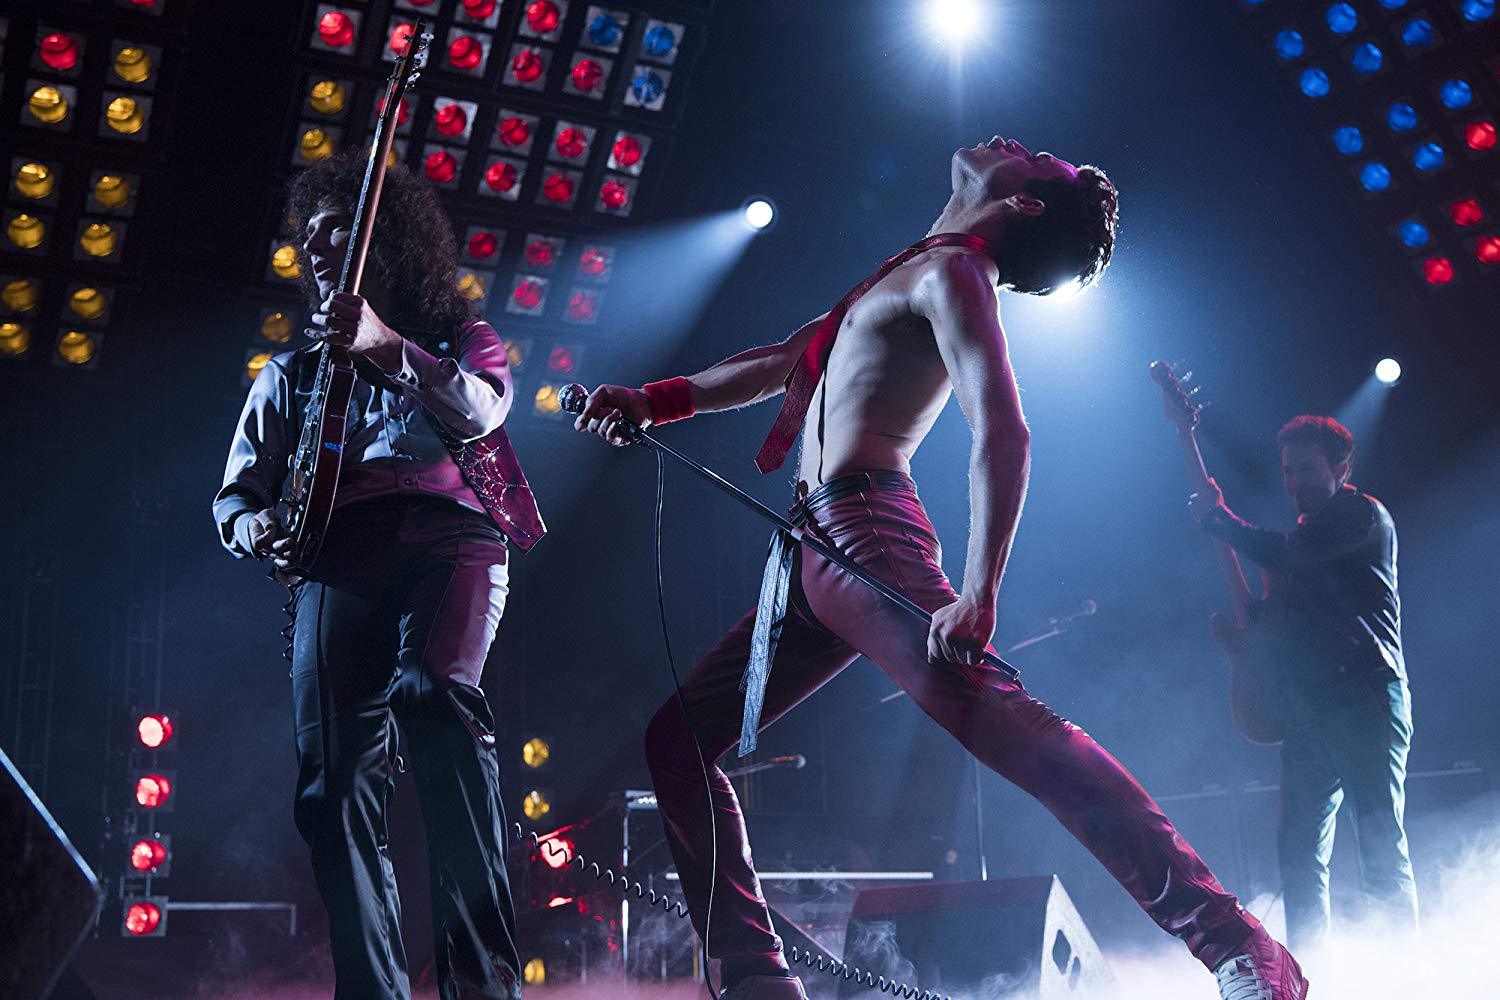 Rami Malek and Gwilym Lee in Bohemian Rhapsody (2018). Courtesy of IMDB